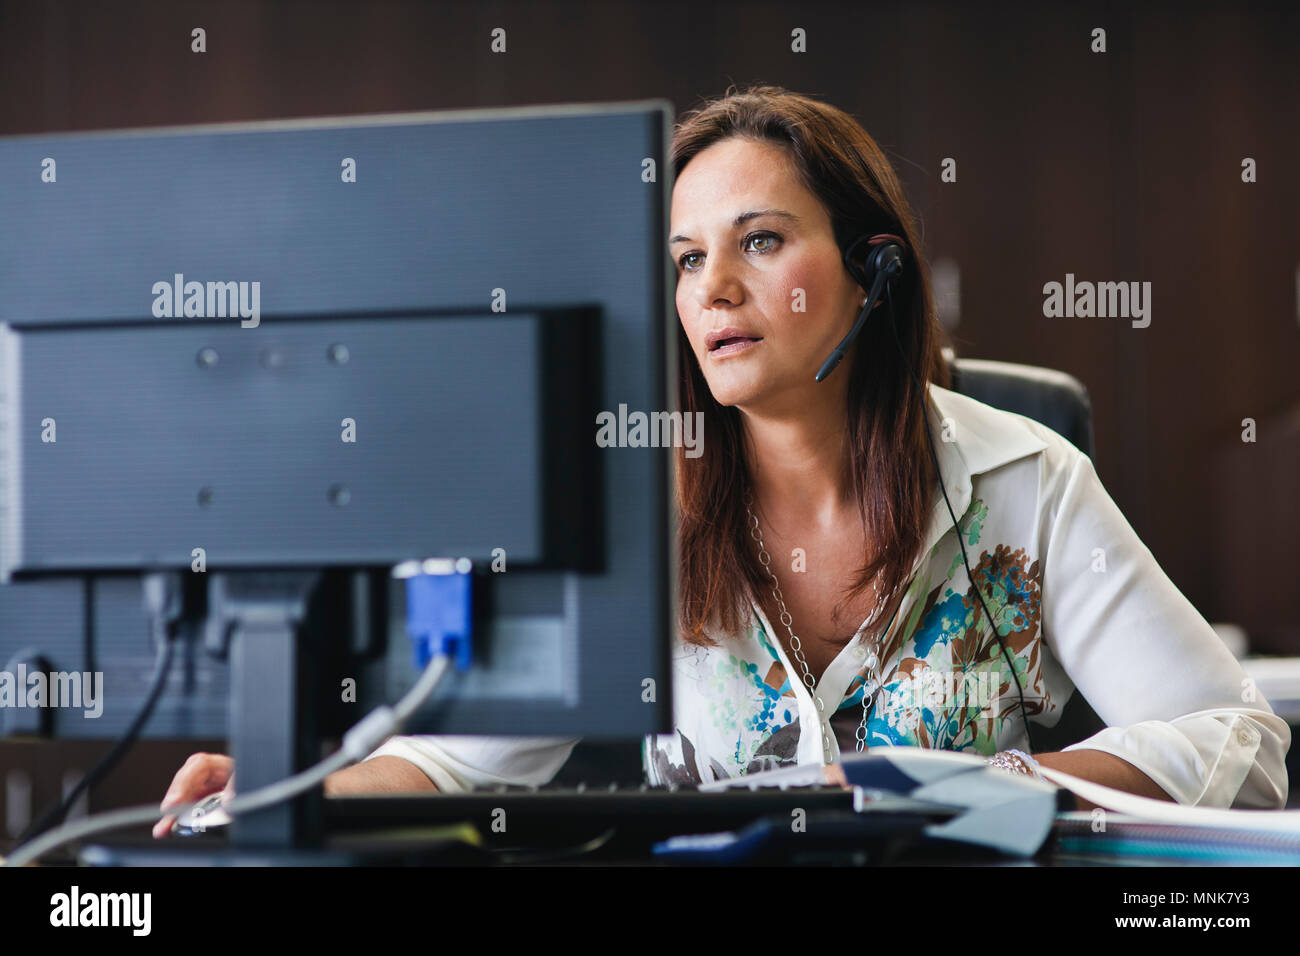 call center operator woman working in office with headphones and computer Stock Photo